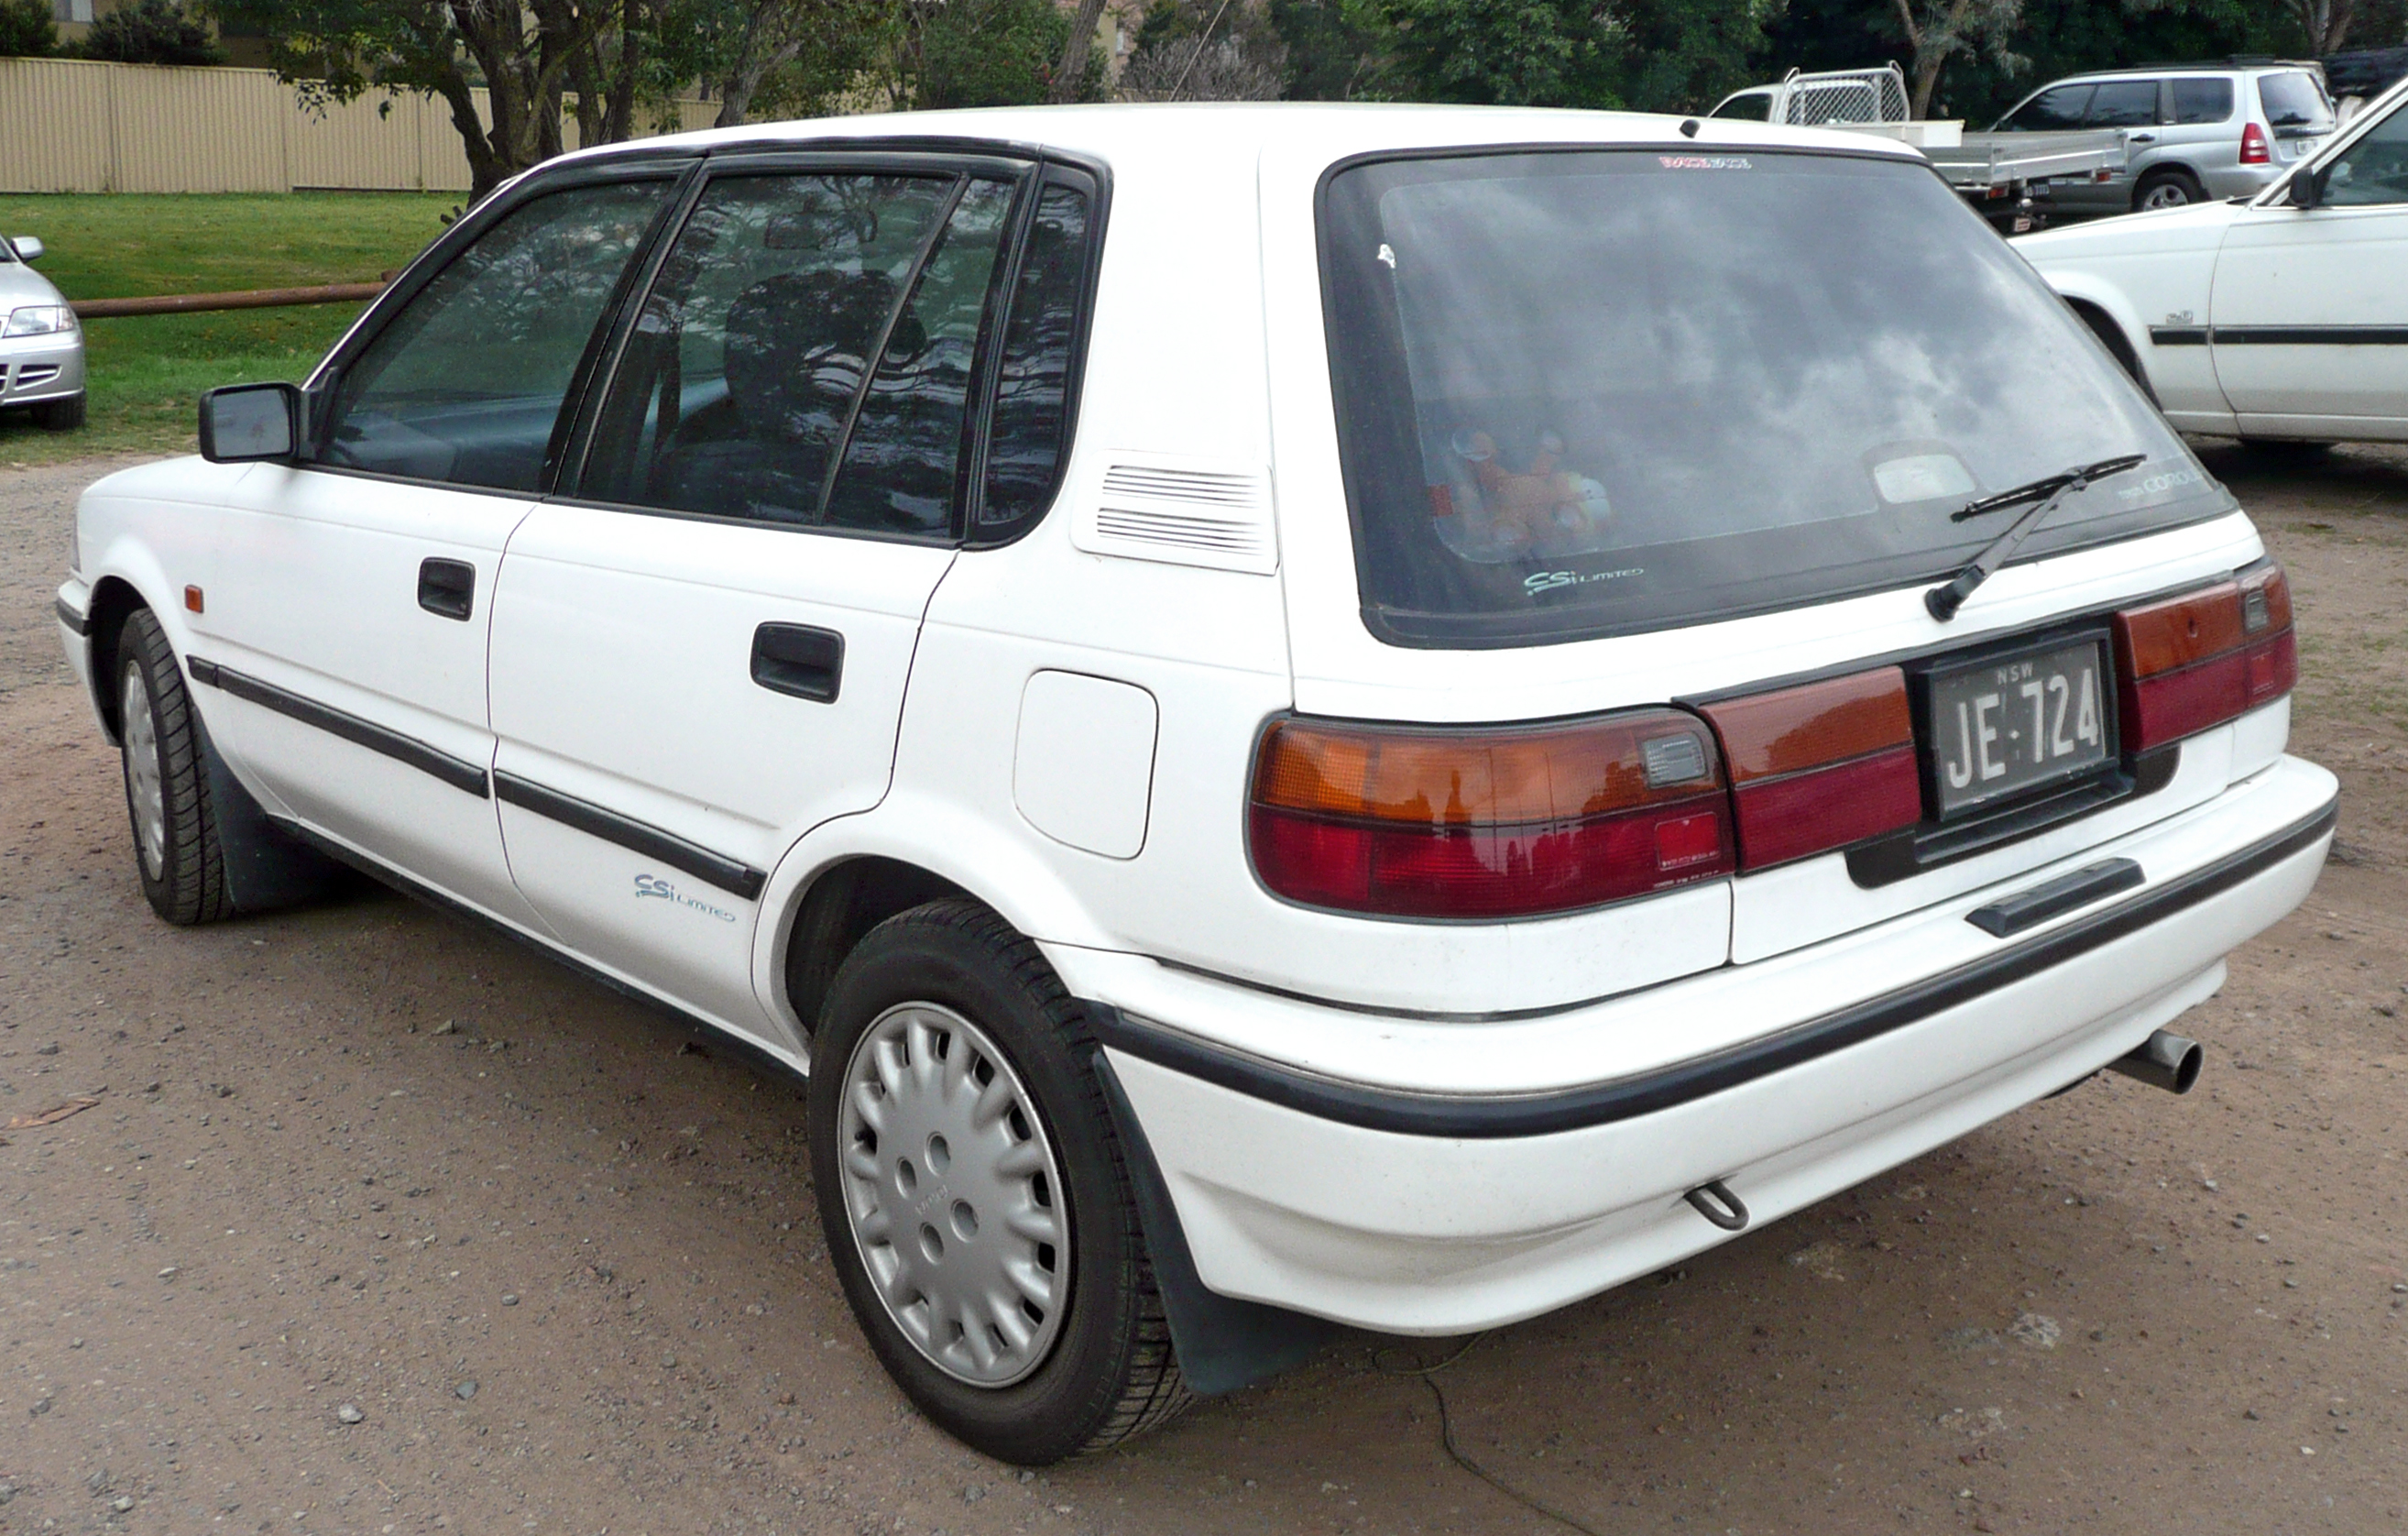 1992 Toyota Corolla 1 3 Hatchback Related Infomation